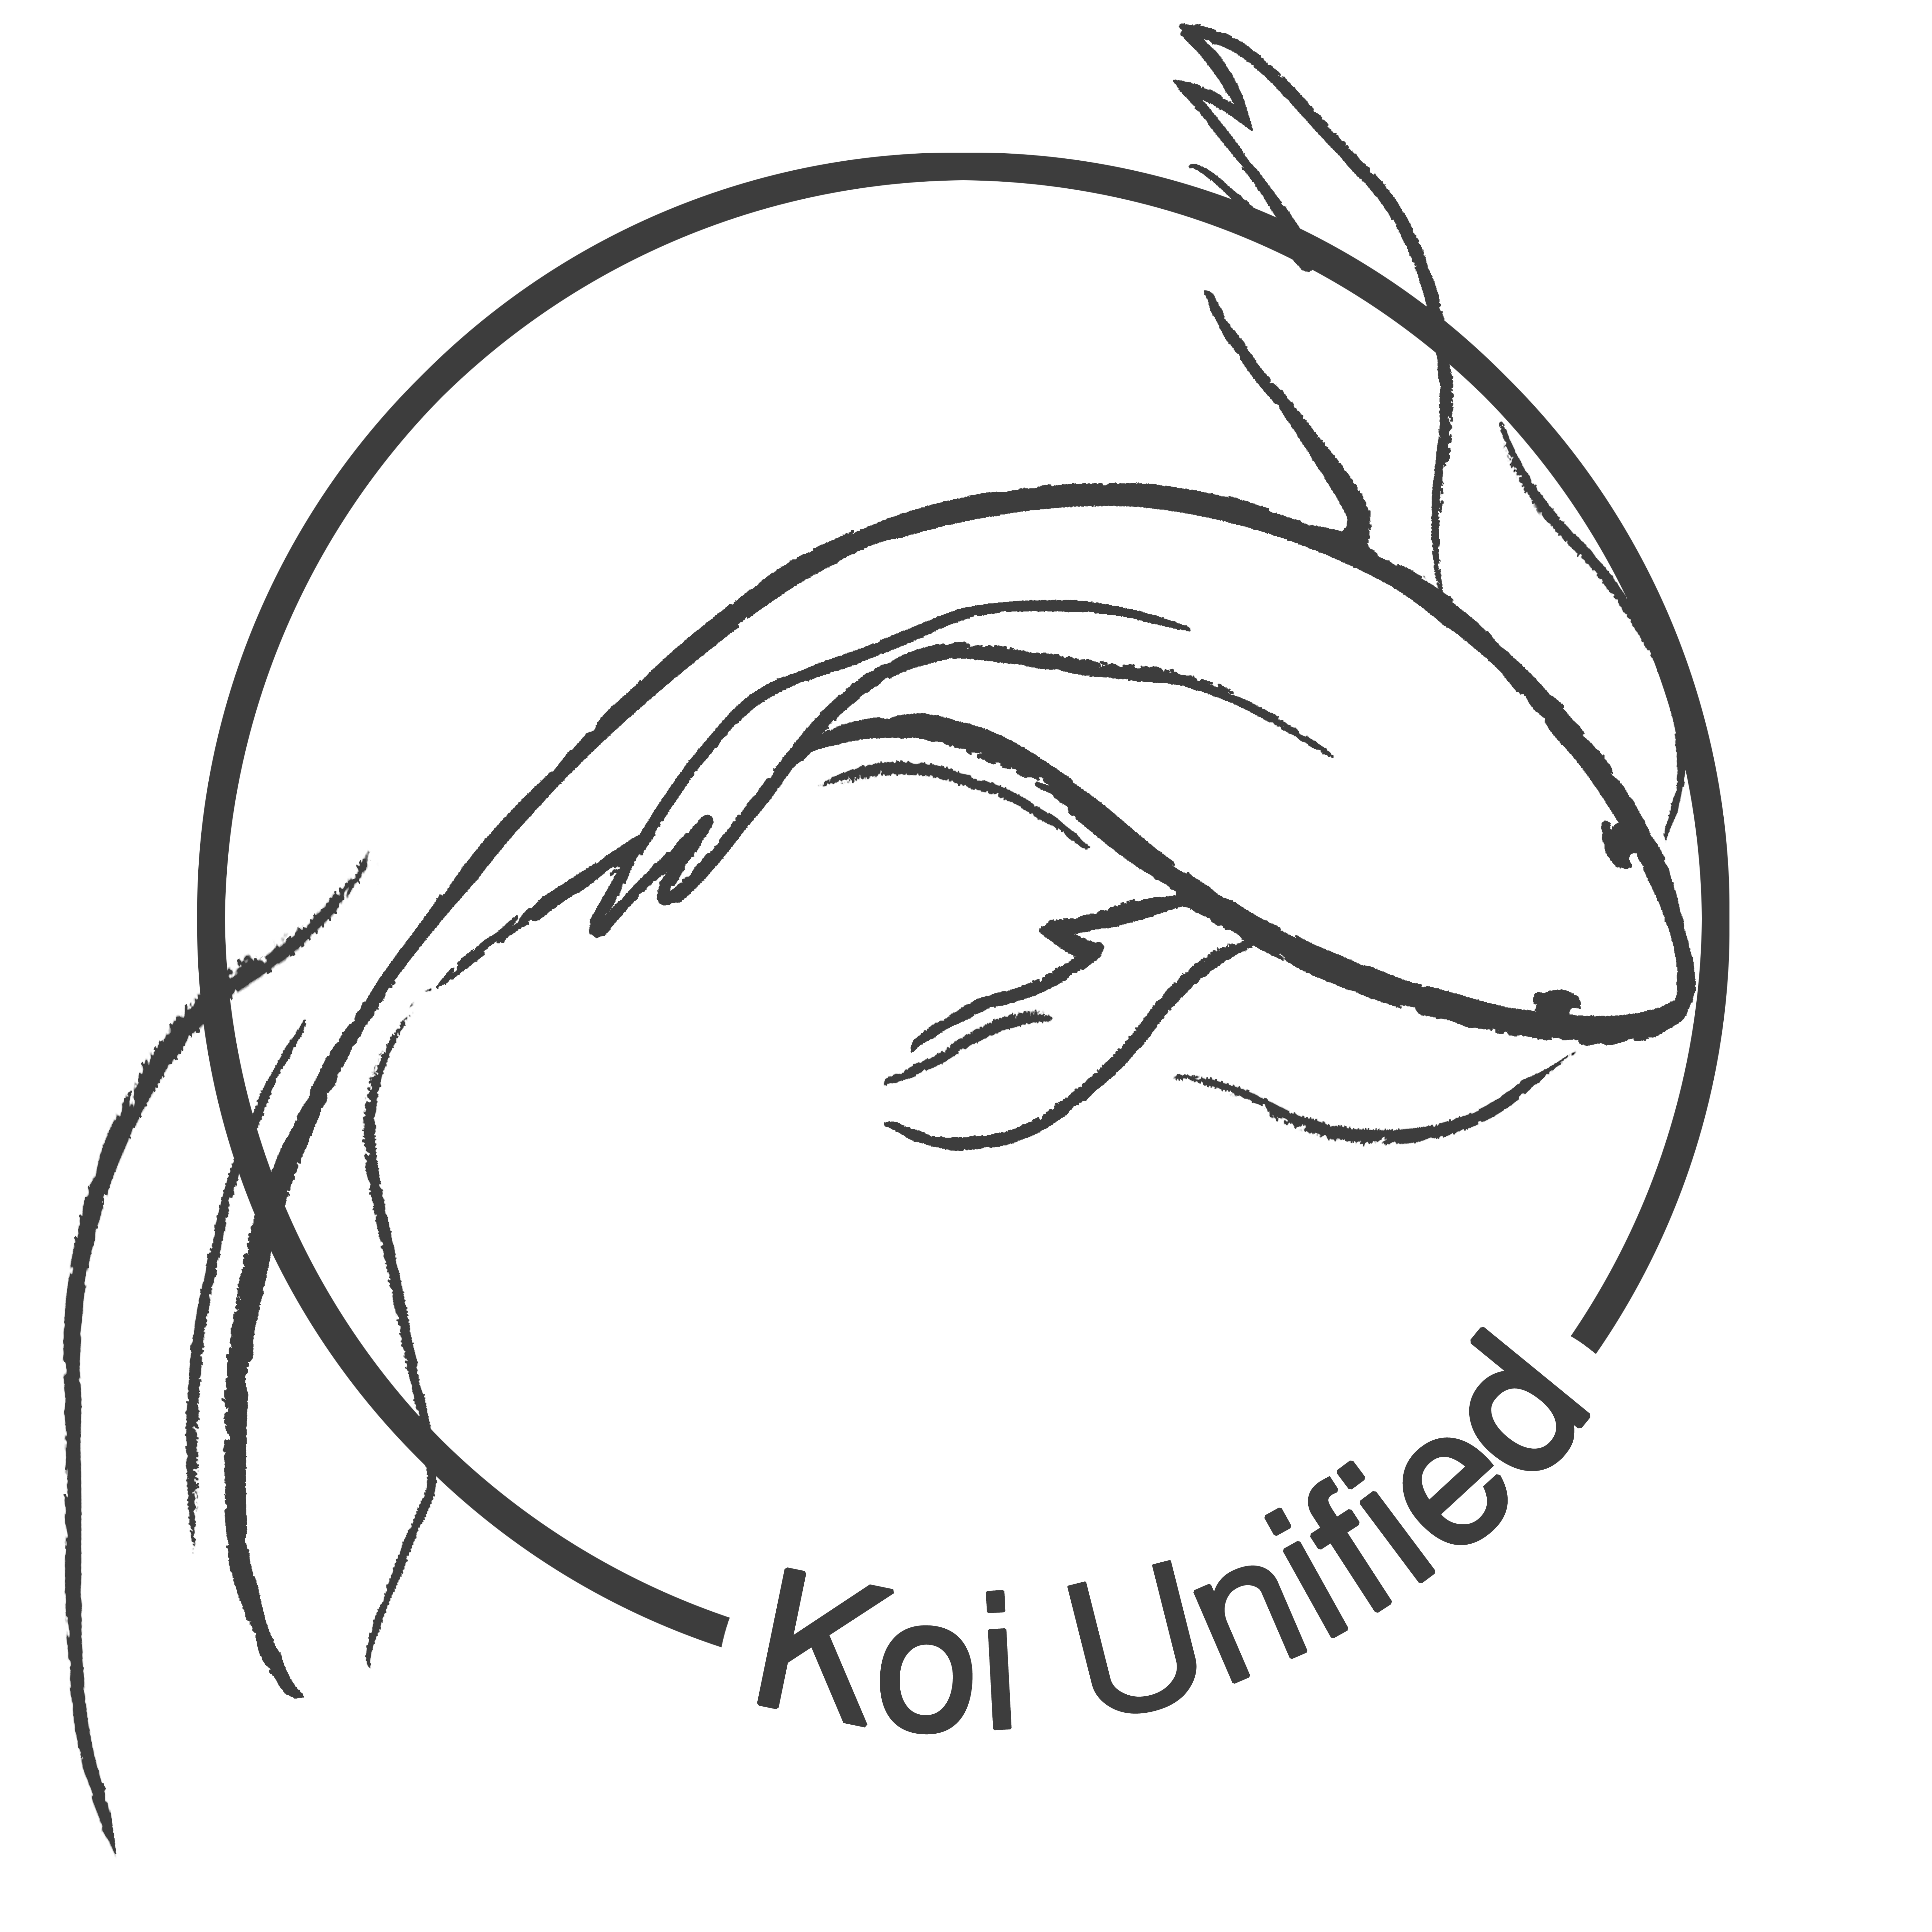 Koi Unified Solutions